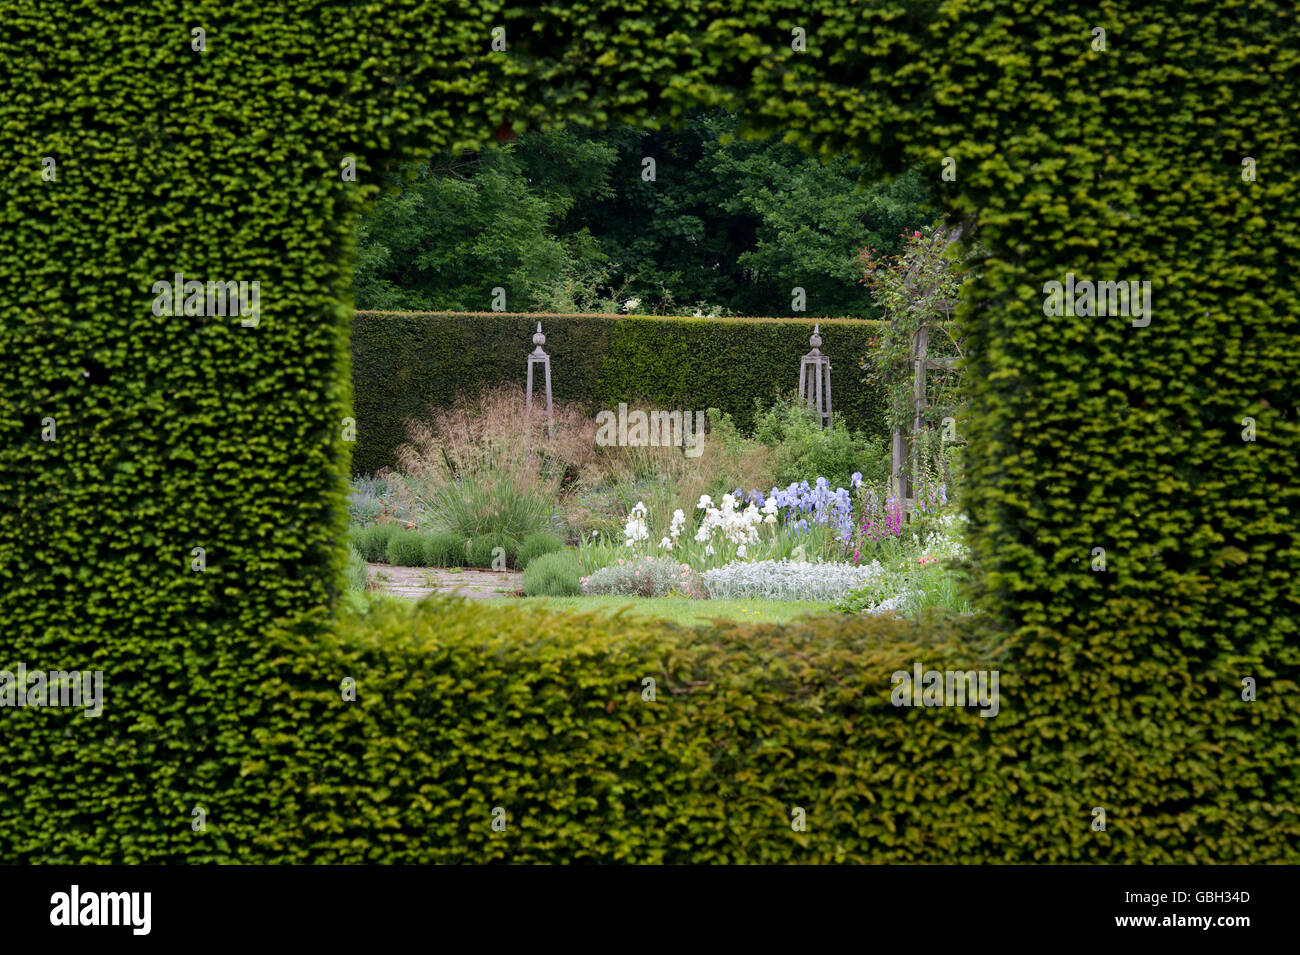 Looking through a hole in the hedge into a garden at Waterperry gardens, Wheatley, Oxfordshire. England - Stock Image